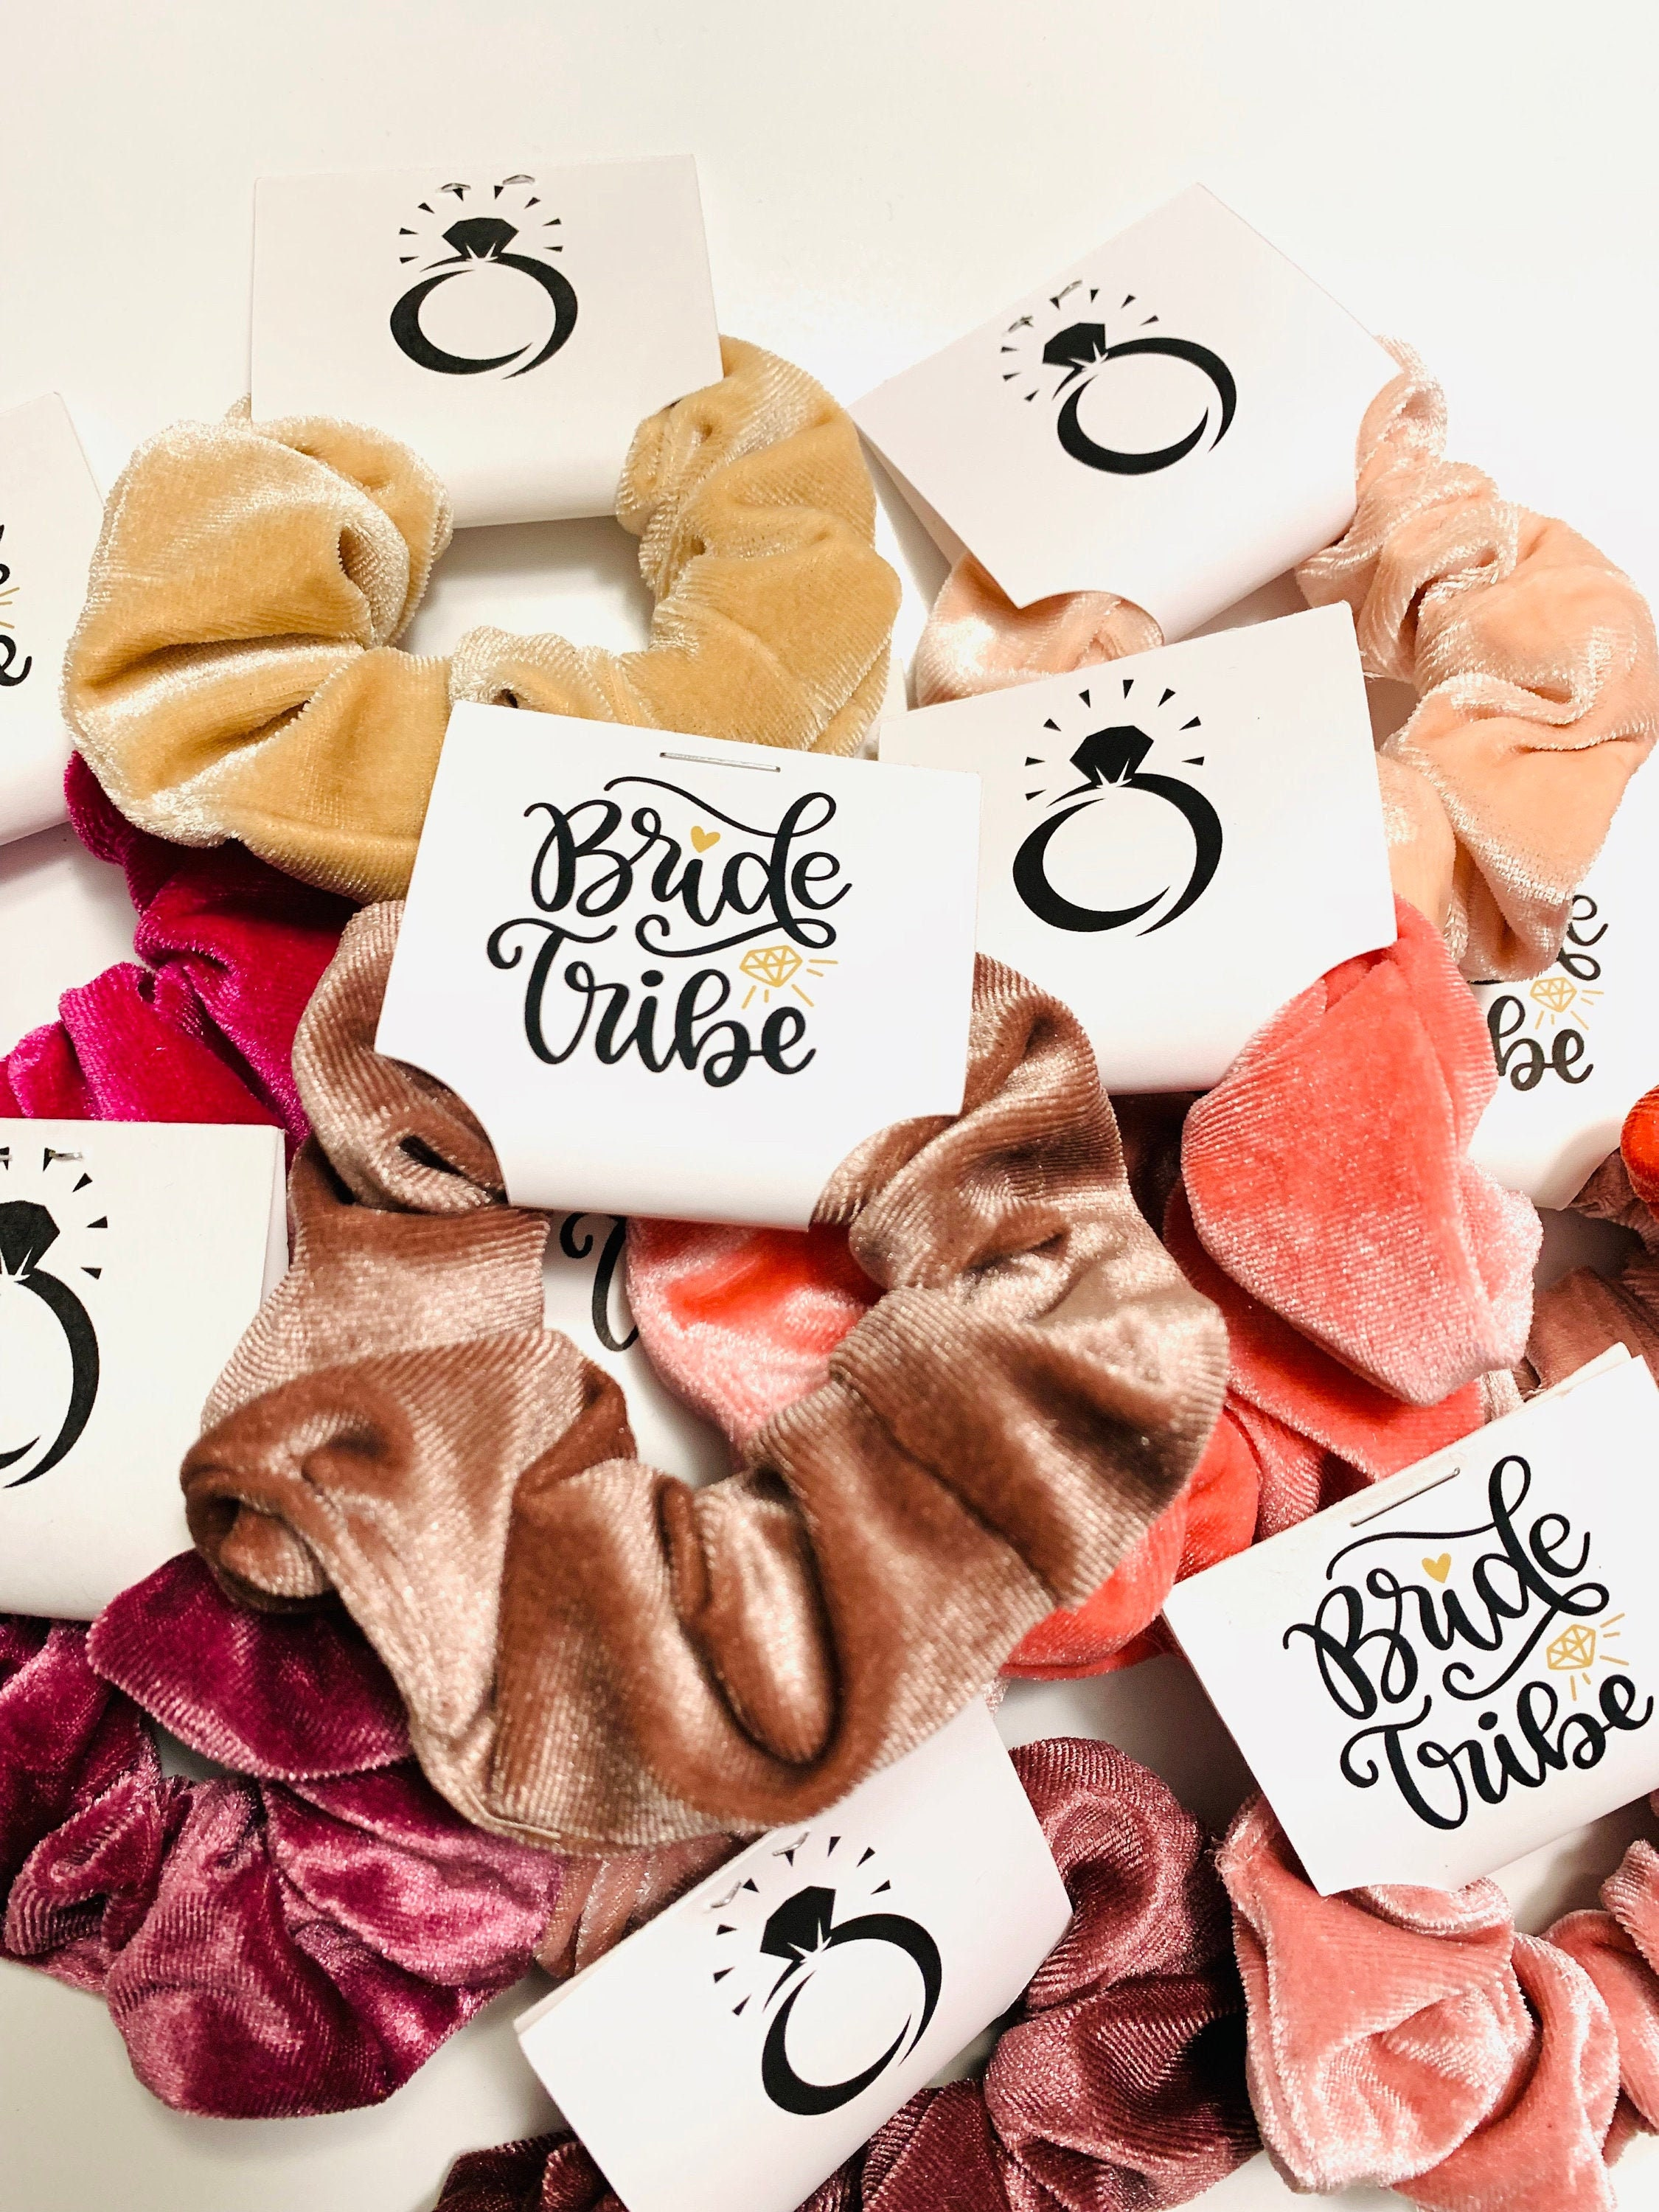 Personalized bachelorette party favors bridal shower favors hostess gift bridesmaid gifts velvet scrunchies favor gold hair tie favors                                                                    SocialBashDecor                               5 out of 5 stars                                                                                                                                                                                                                                                          (365)                                                      CA$1.03